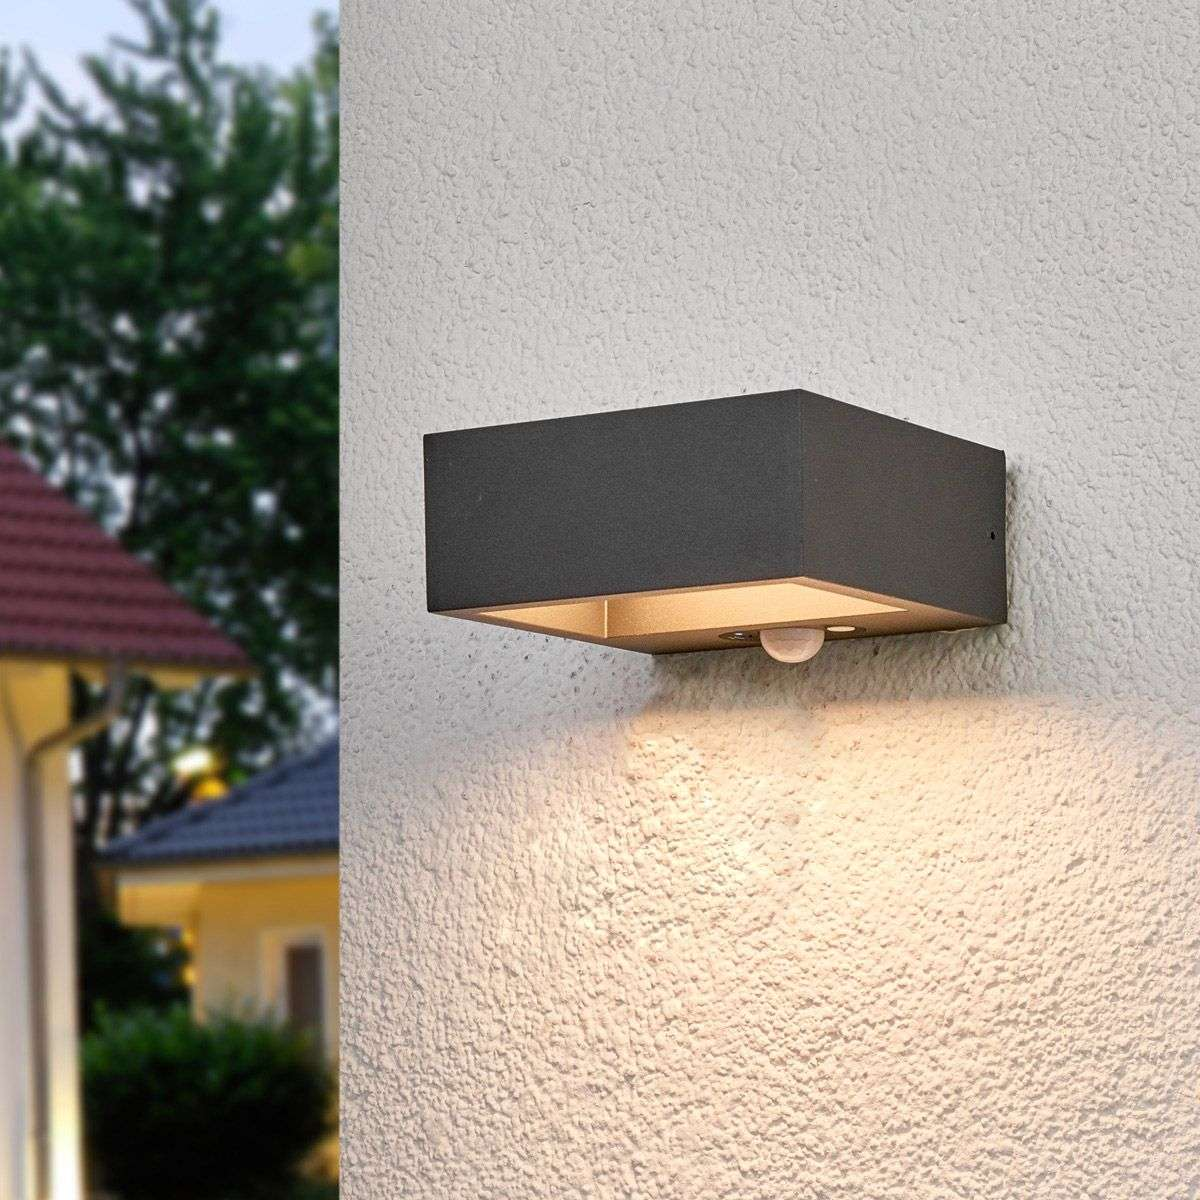 Solar powered led outdoor wall light mahra sensor lights solar powered led outdoor wall light mahra sensor 9619074 31 aloadofball Image collections